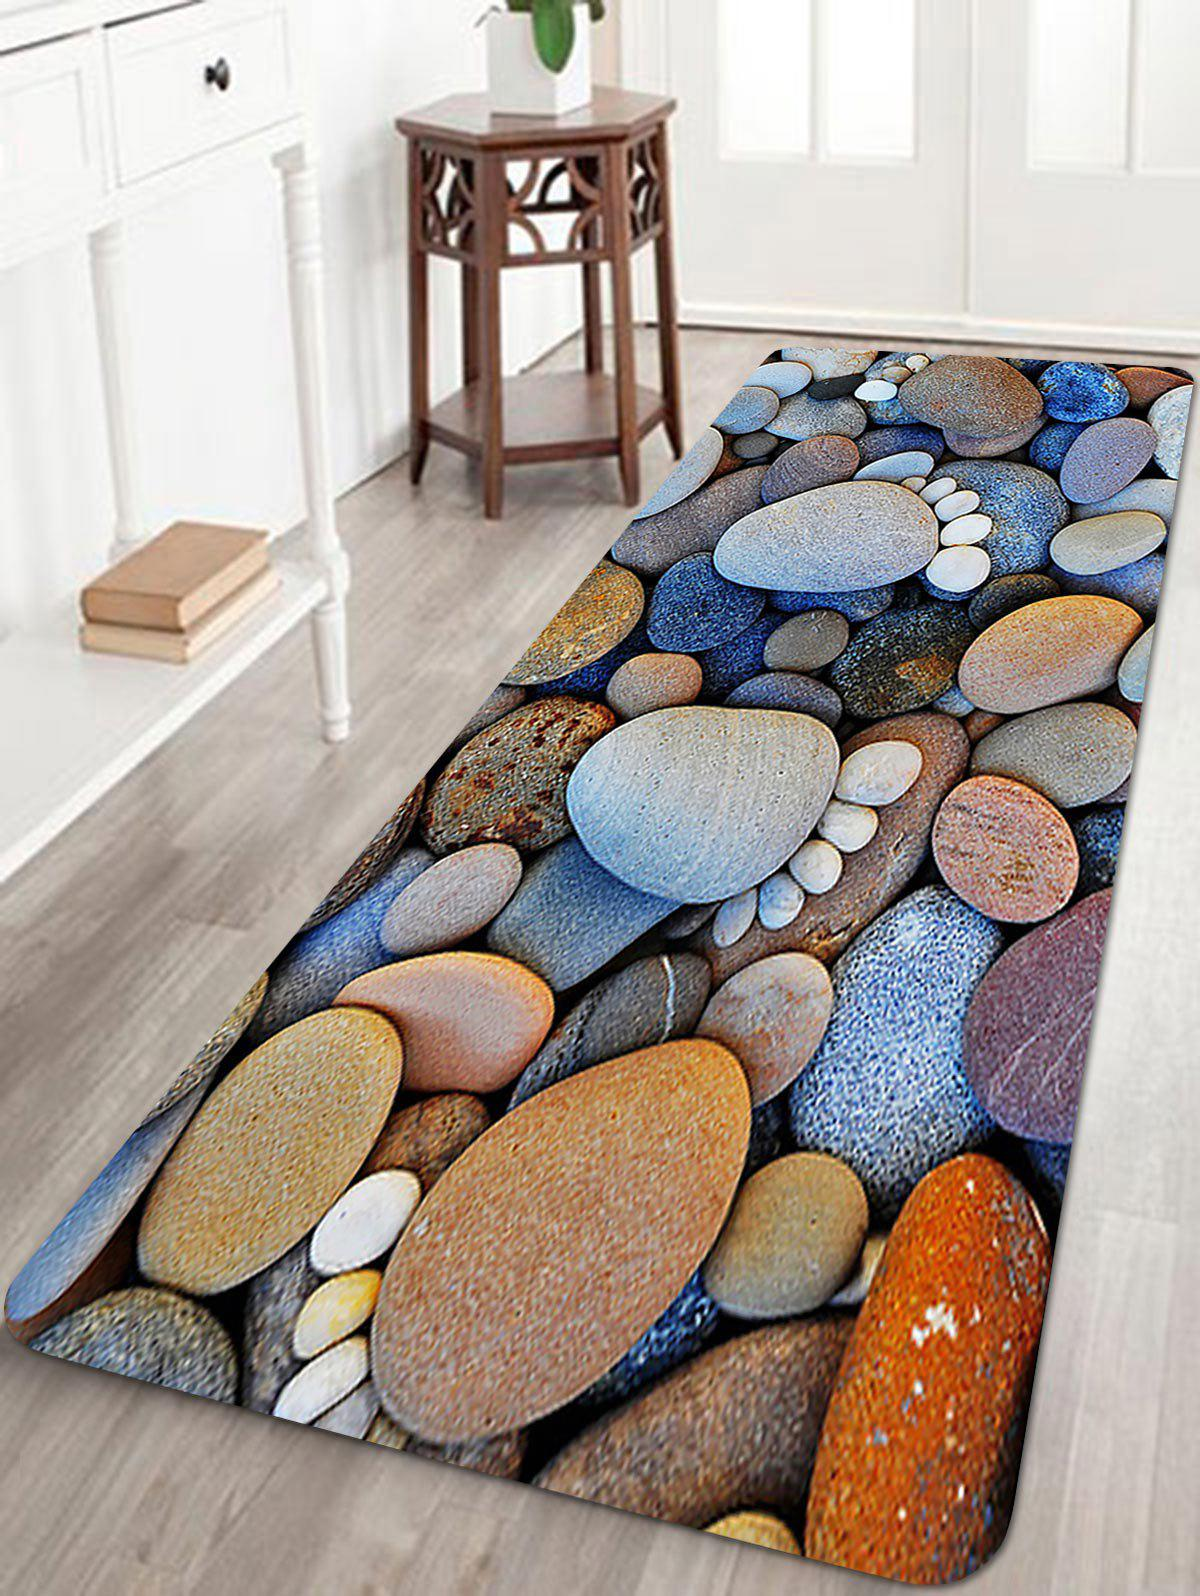 Stones Footprint Pattern Anti-skid Floor Area Rug sand shell starfish pattern floor area rug